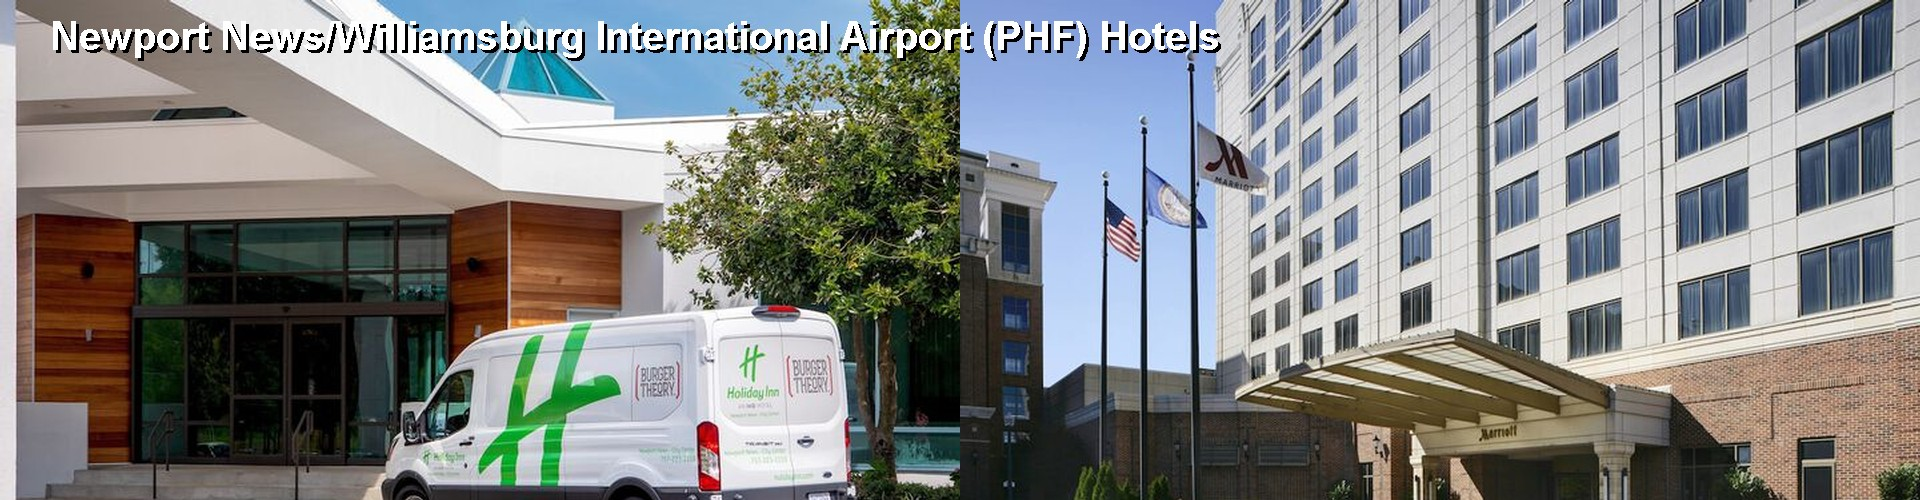 5 Best Hotels near Newport News/Williamsburg International Airport (PHF)